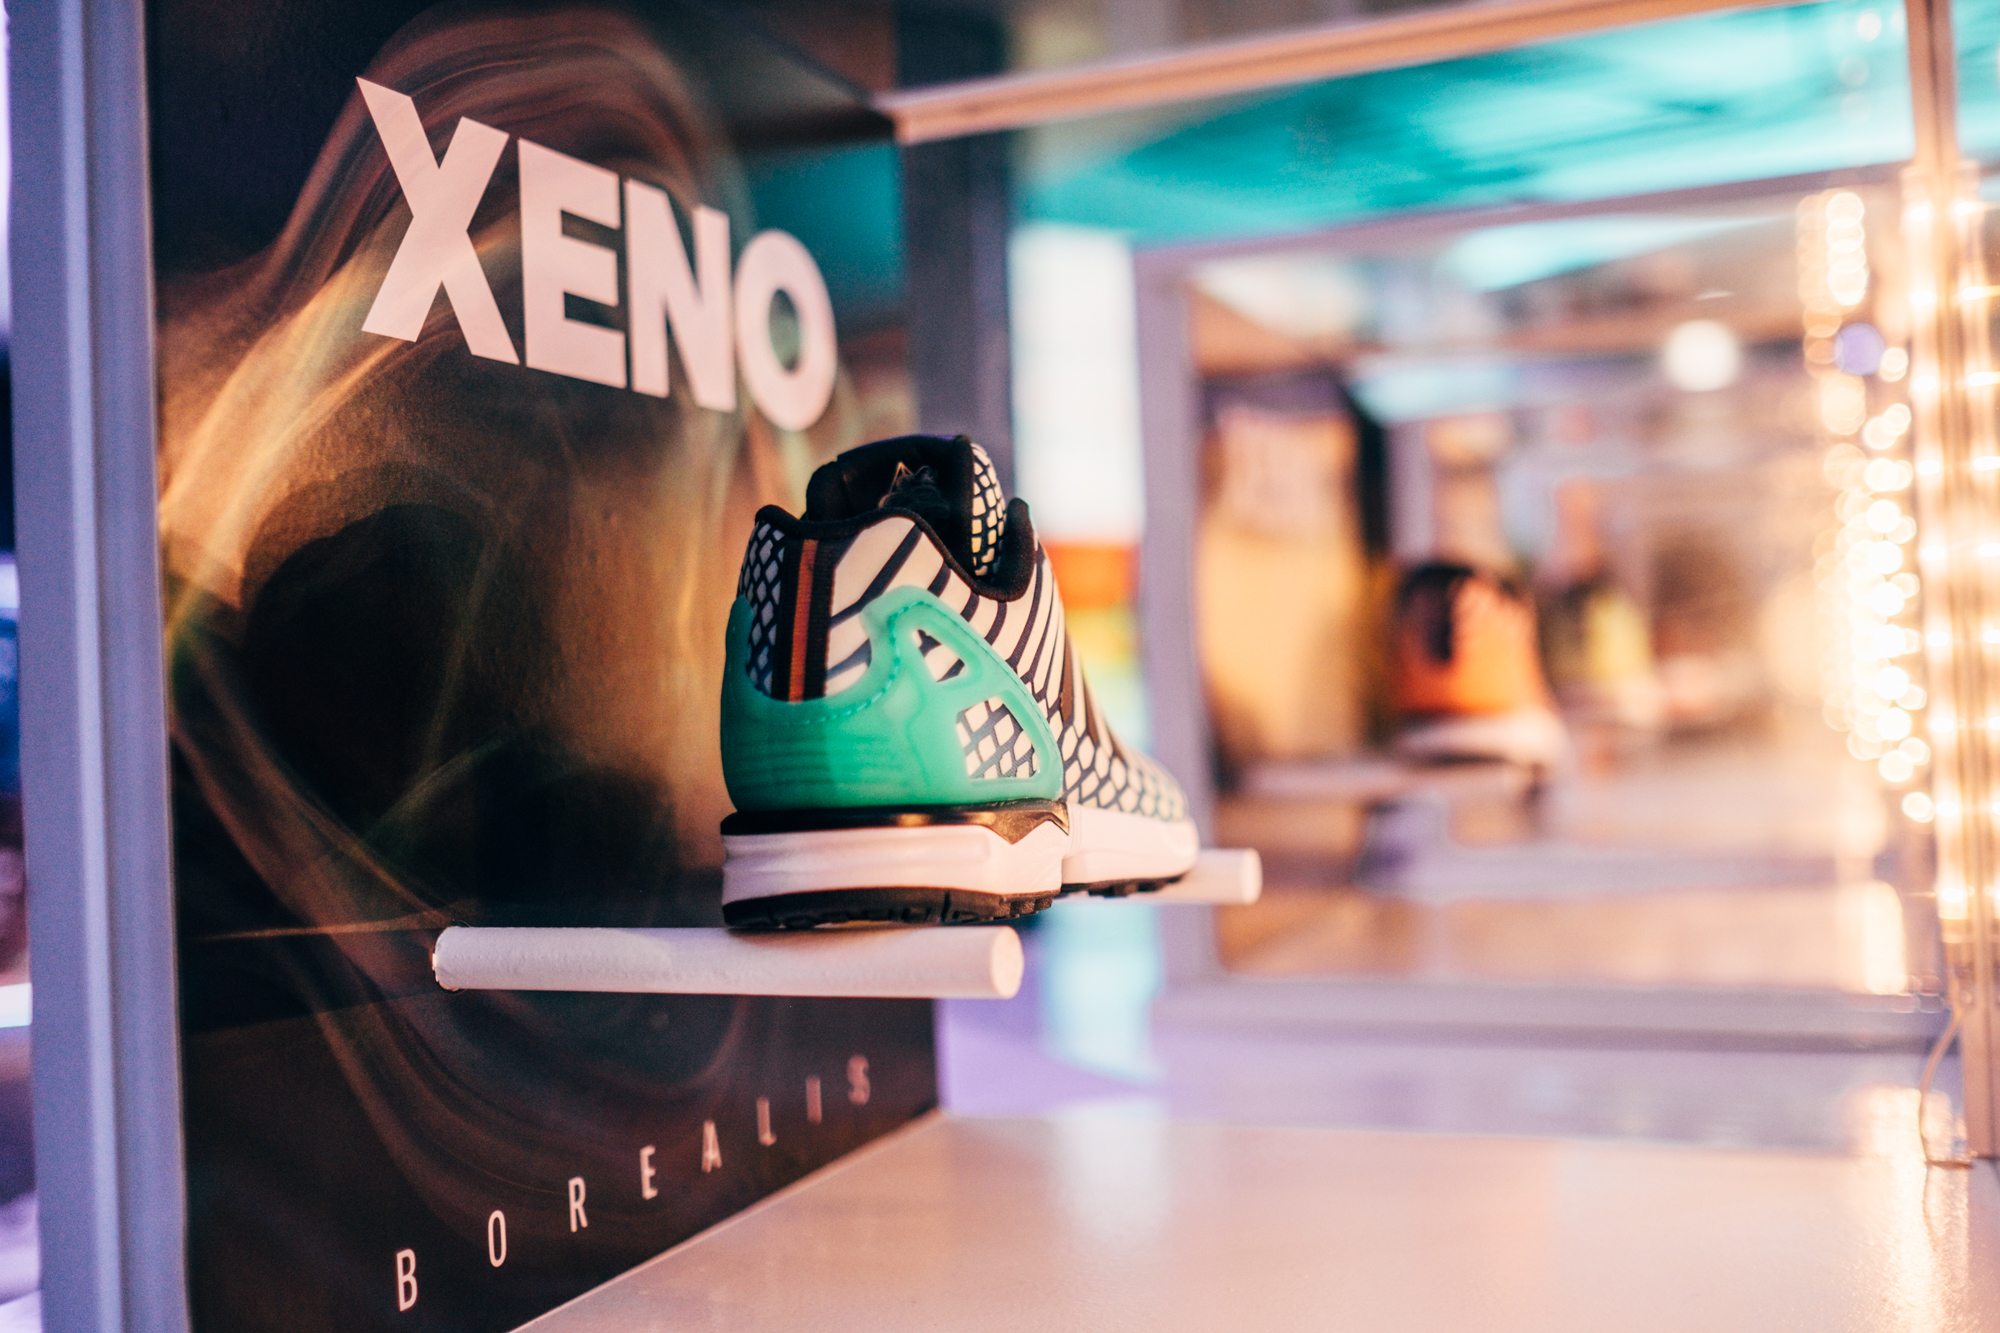 New adidas Xeno Borealis on display at the adidas Vault